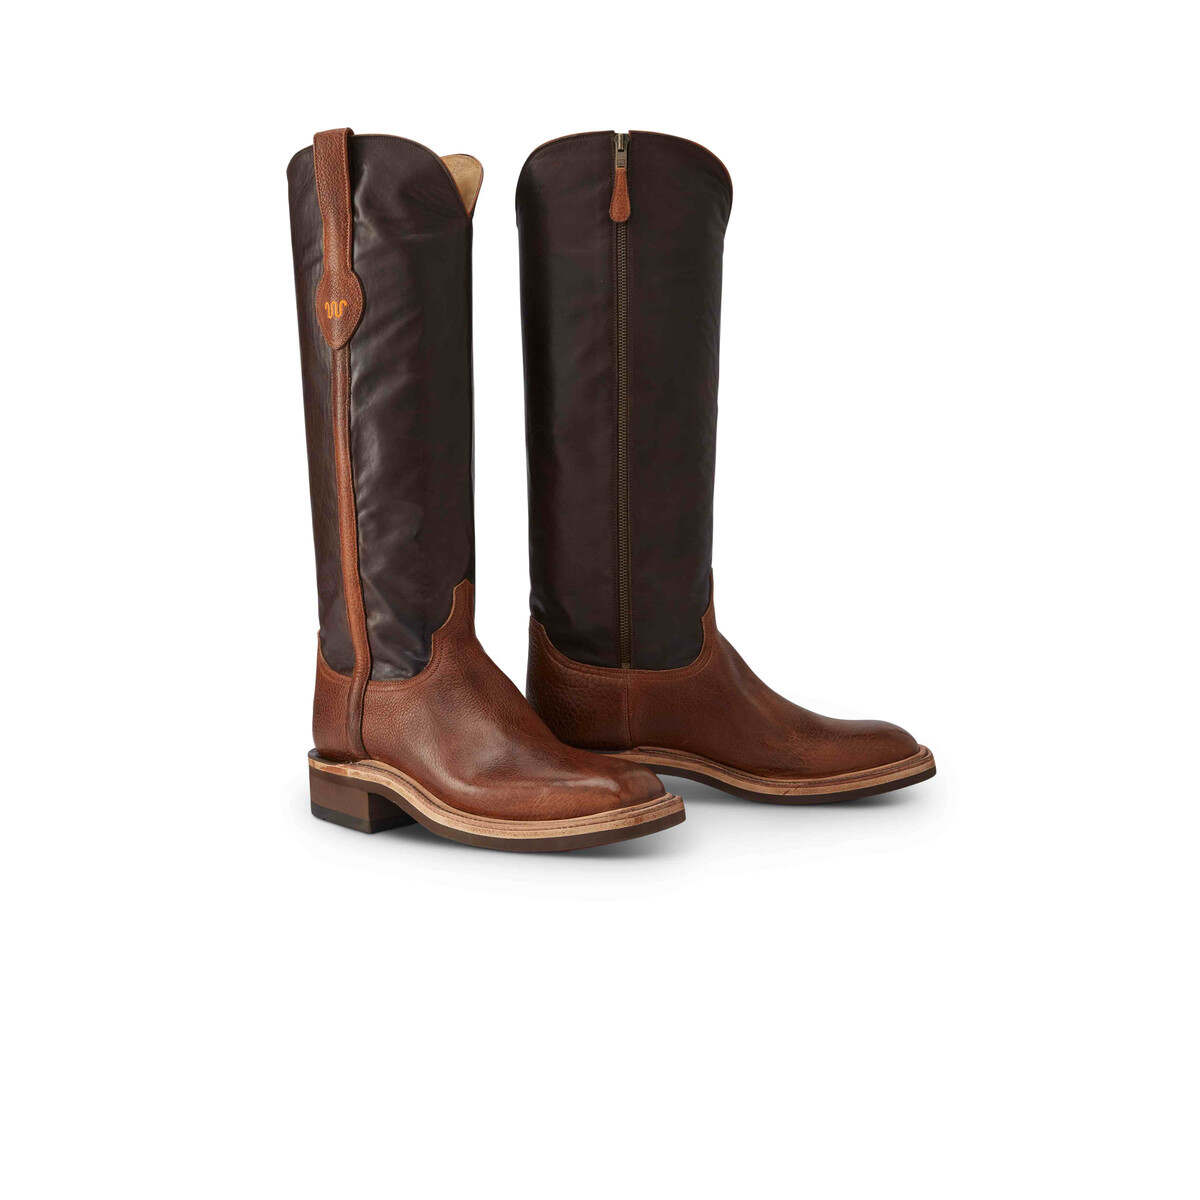 MENS KING RANCH LUCCHESE SNAKE BOOT